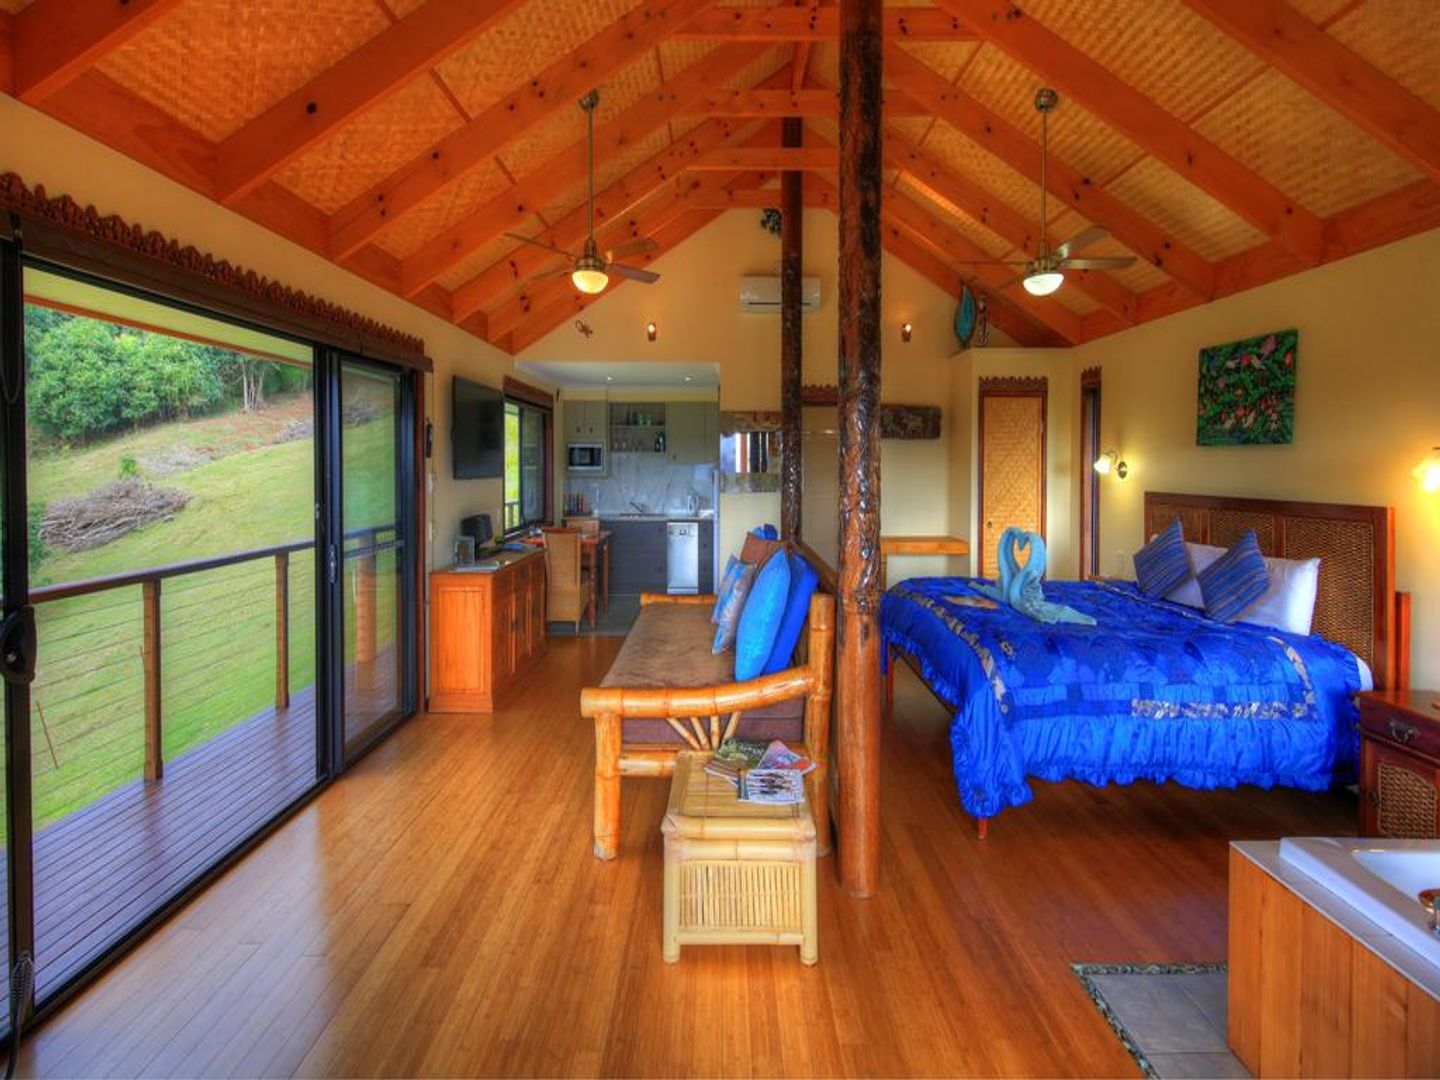 A bedroom with a wooden table at Maleny Tropical Retreat.